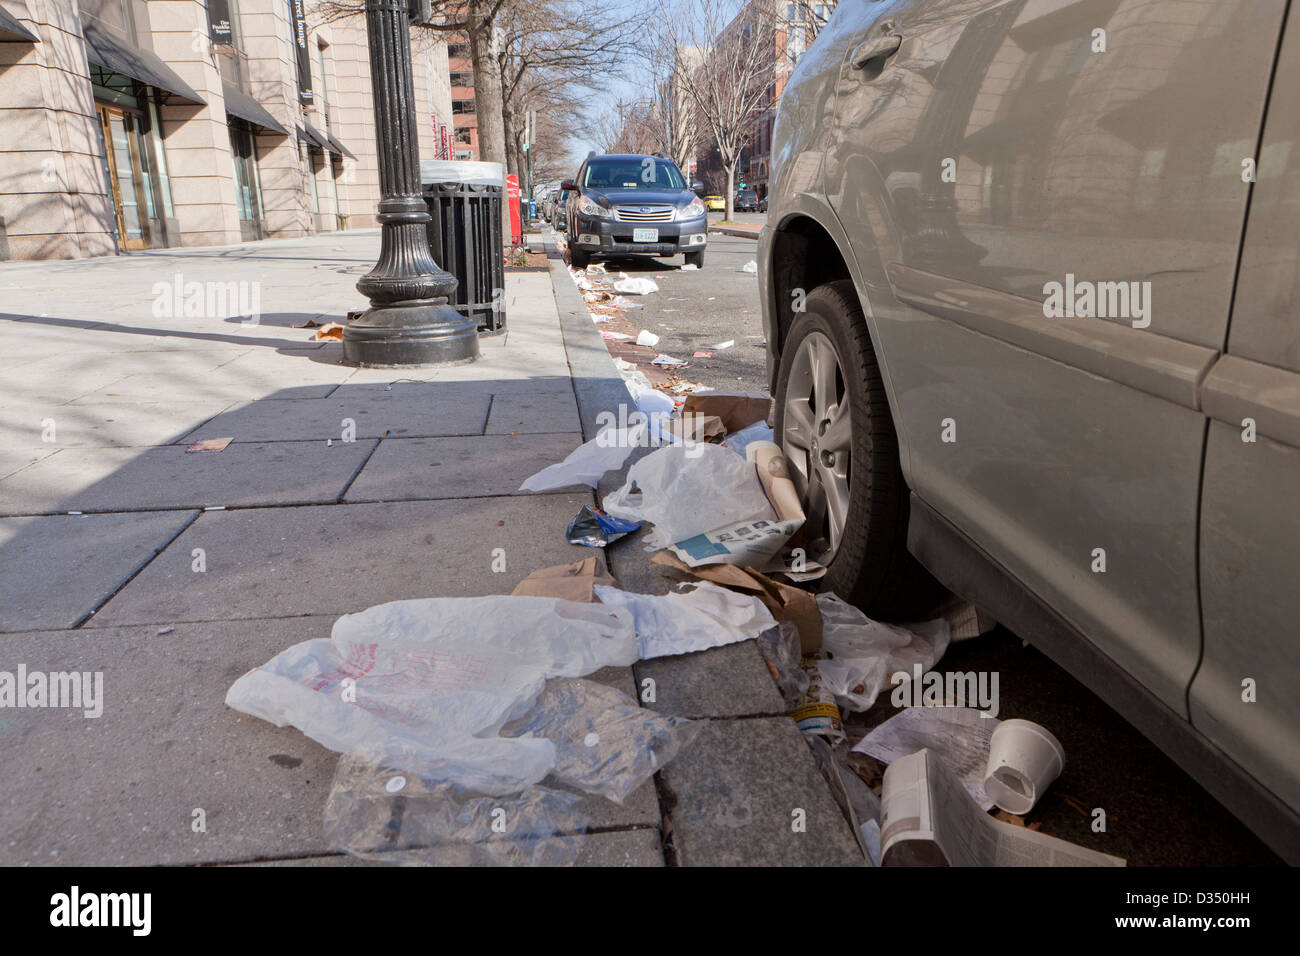 Roadside litter - USA - Stock Image